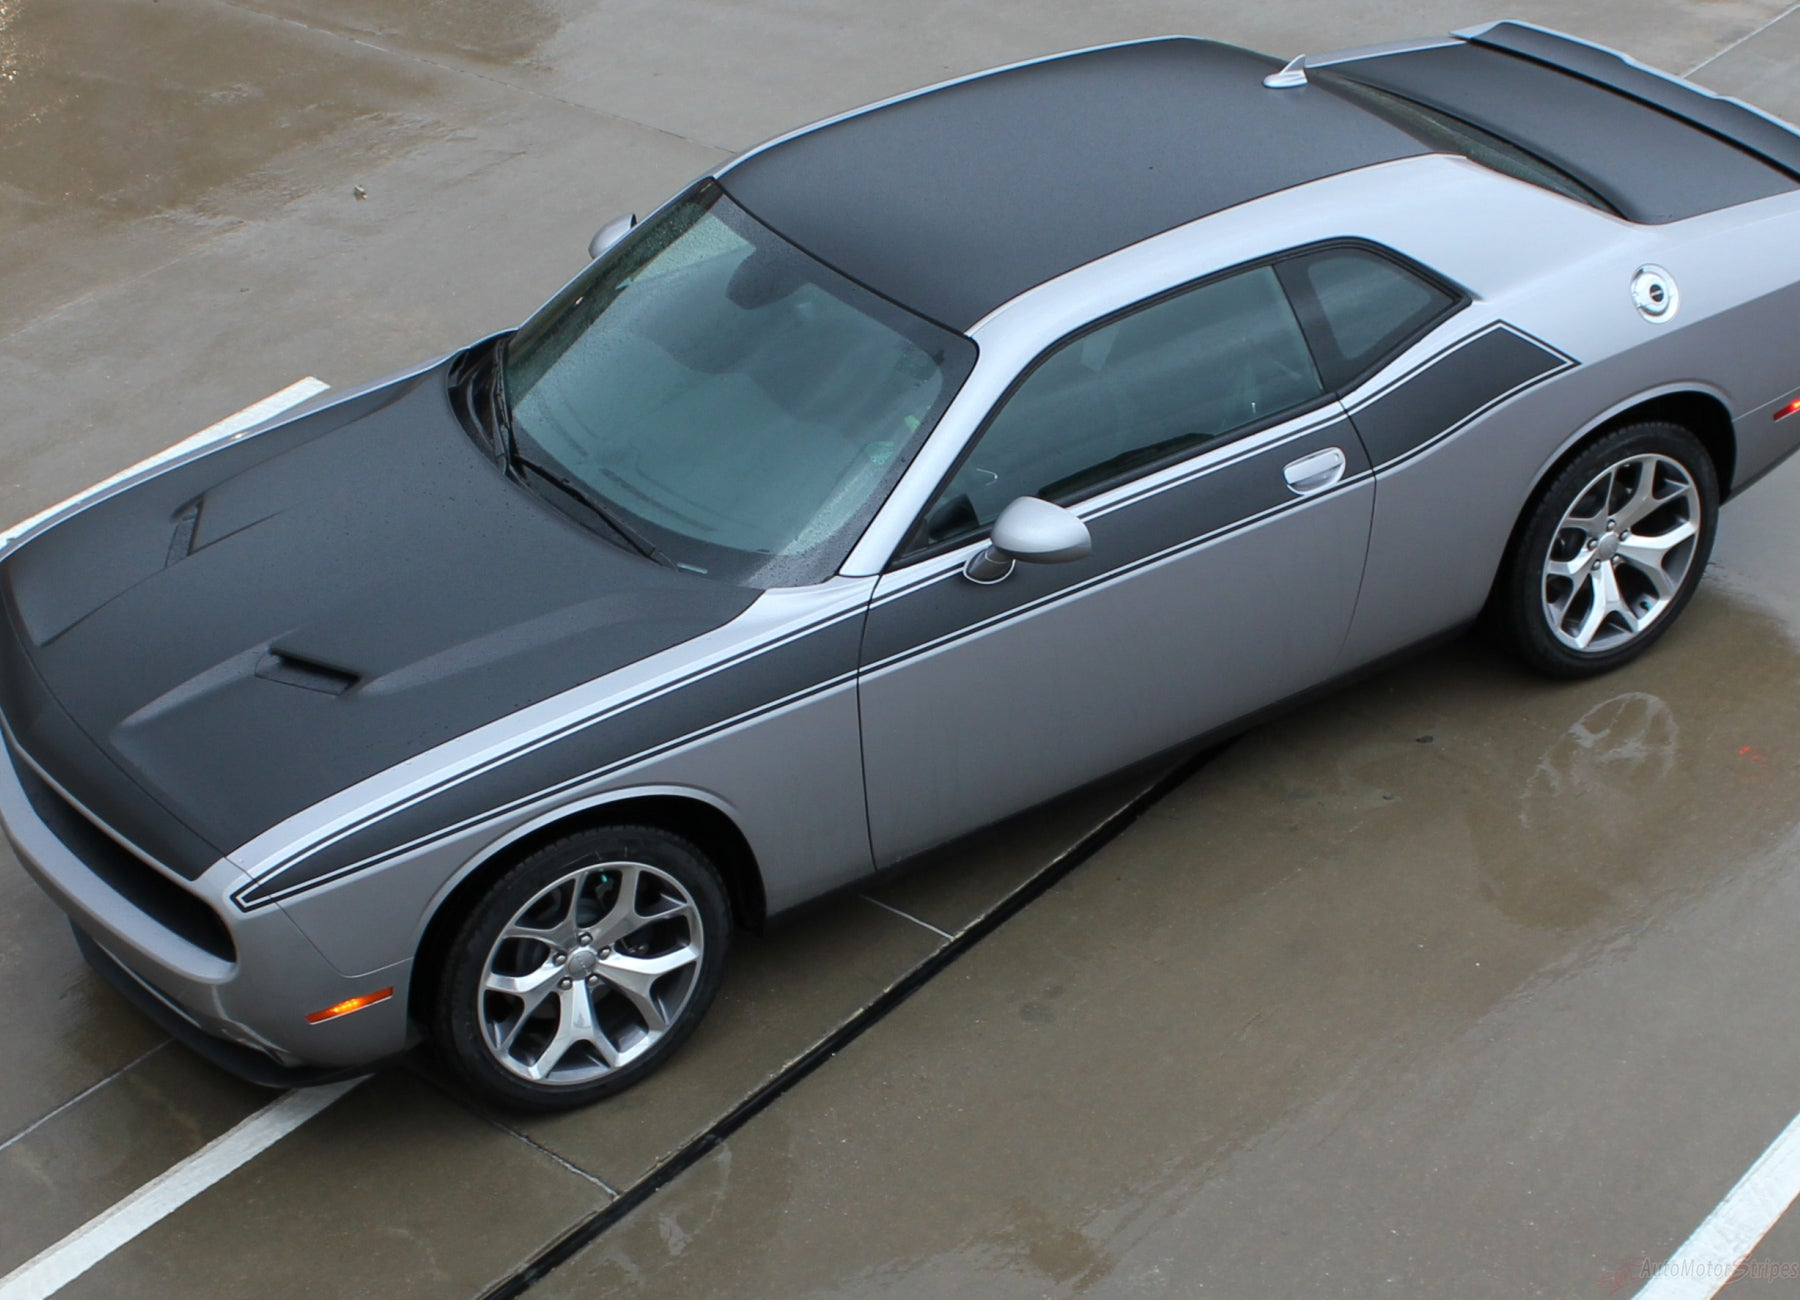 2011 2020 Dodge Challenger Stripes Pursuit T A 392 Decal Vinyl Graphic Auto Motor Stripes Decals Vinyl Graphics And 3m Striping Kits